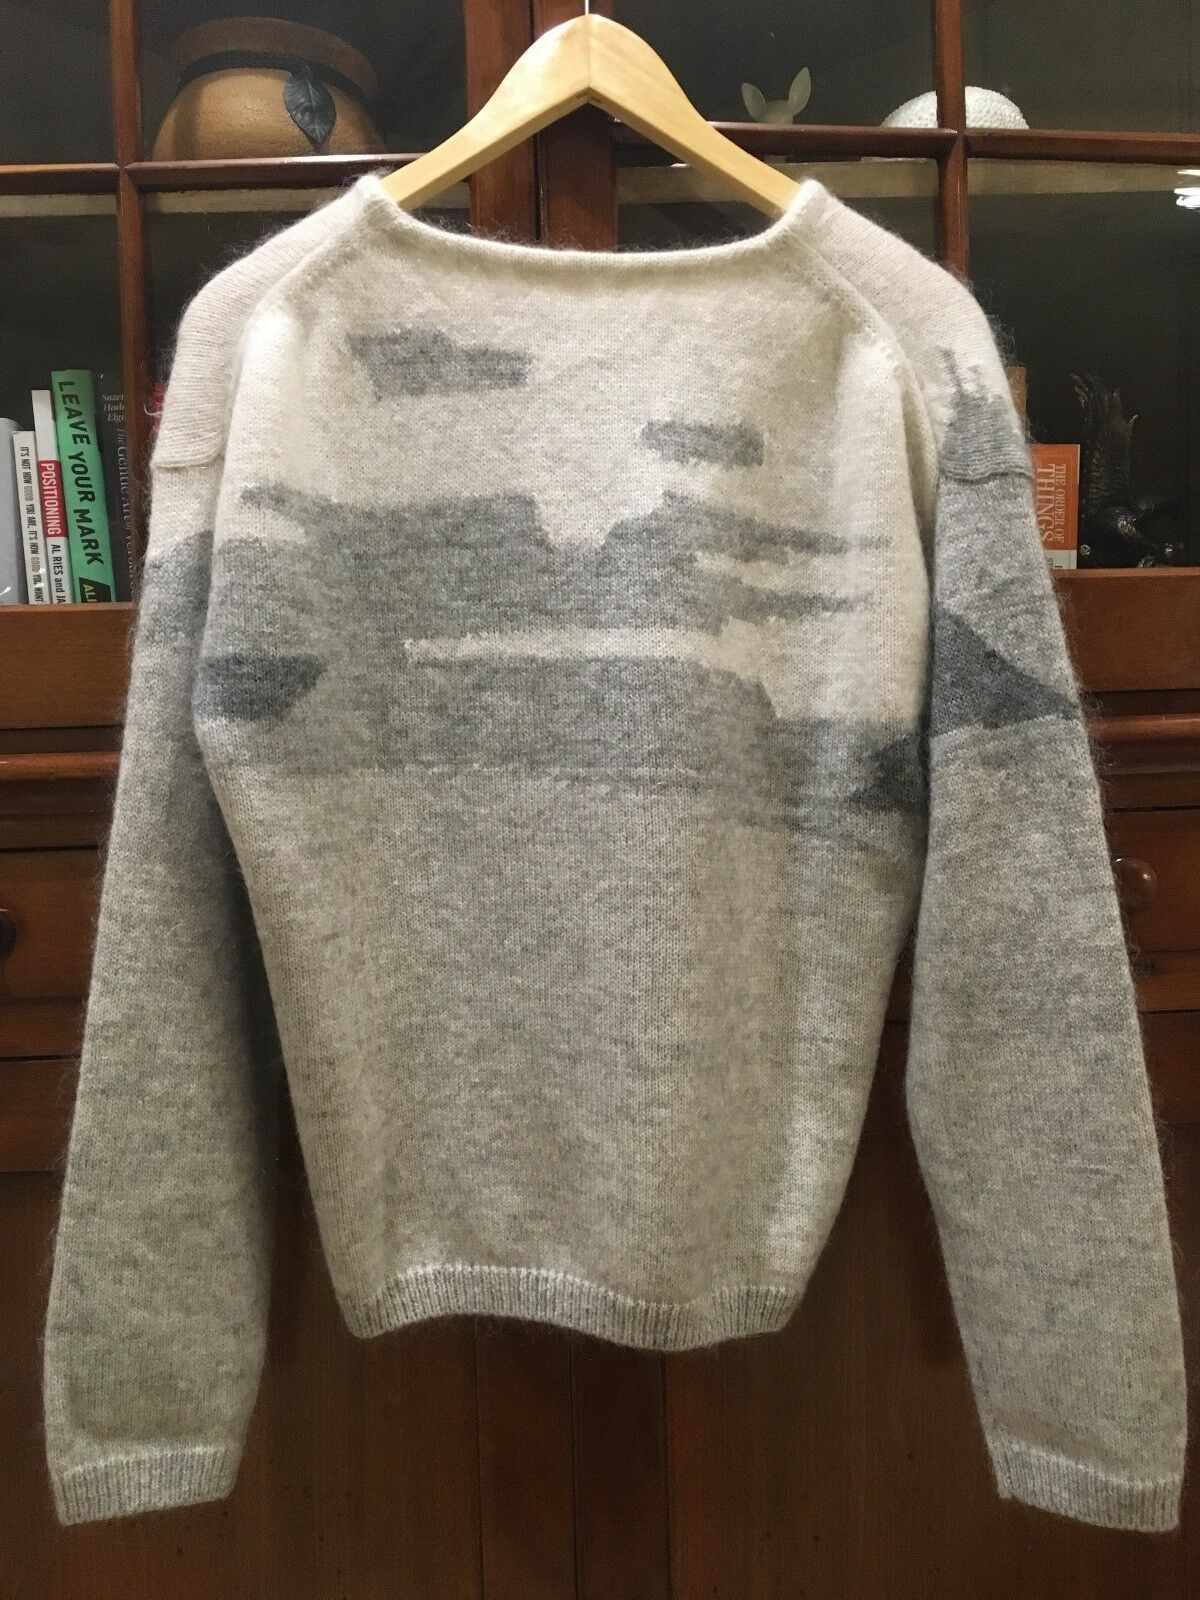 WOW WOW WOW    NWOT 10 Crosby Derek Lam Sweater - Merino Angora Blend - Super Cool SZ M 2b24d4